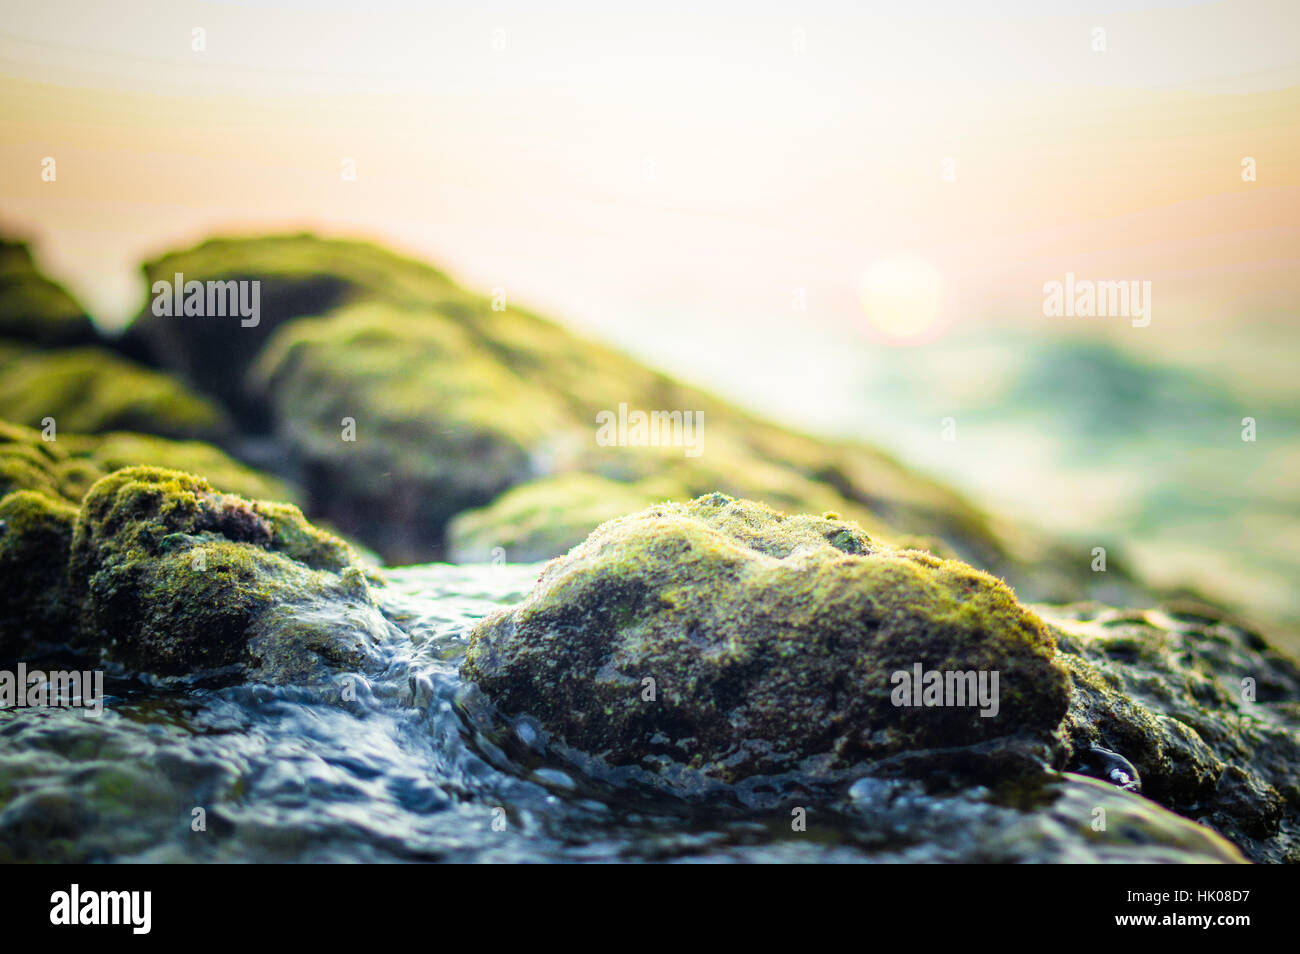 Water plants on the rock close up, nature abstract blurred background. Phuket island, Thailand - Stock Image